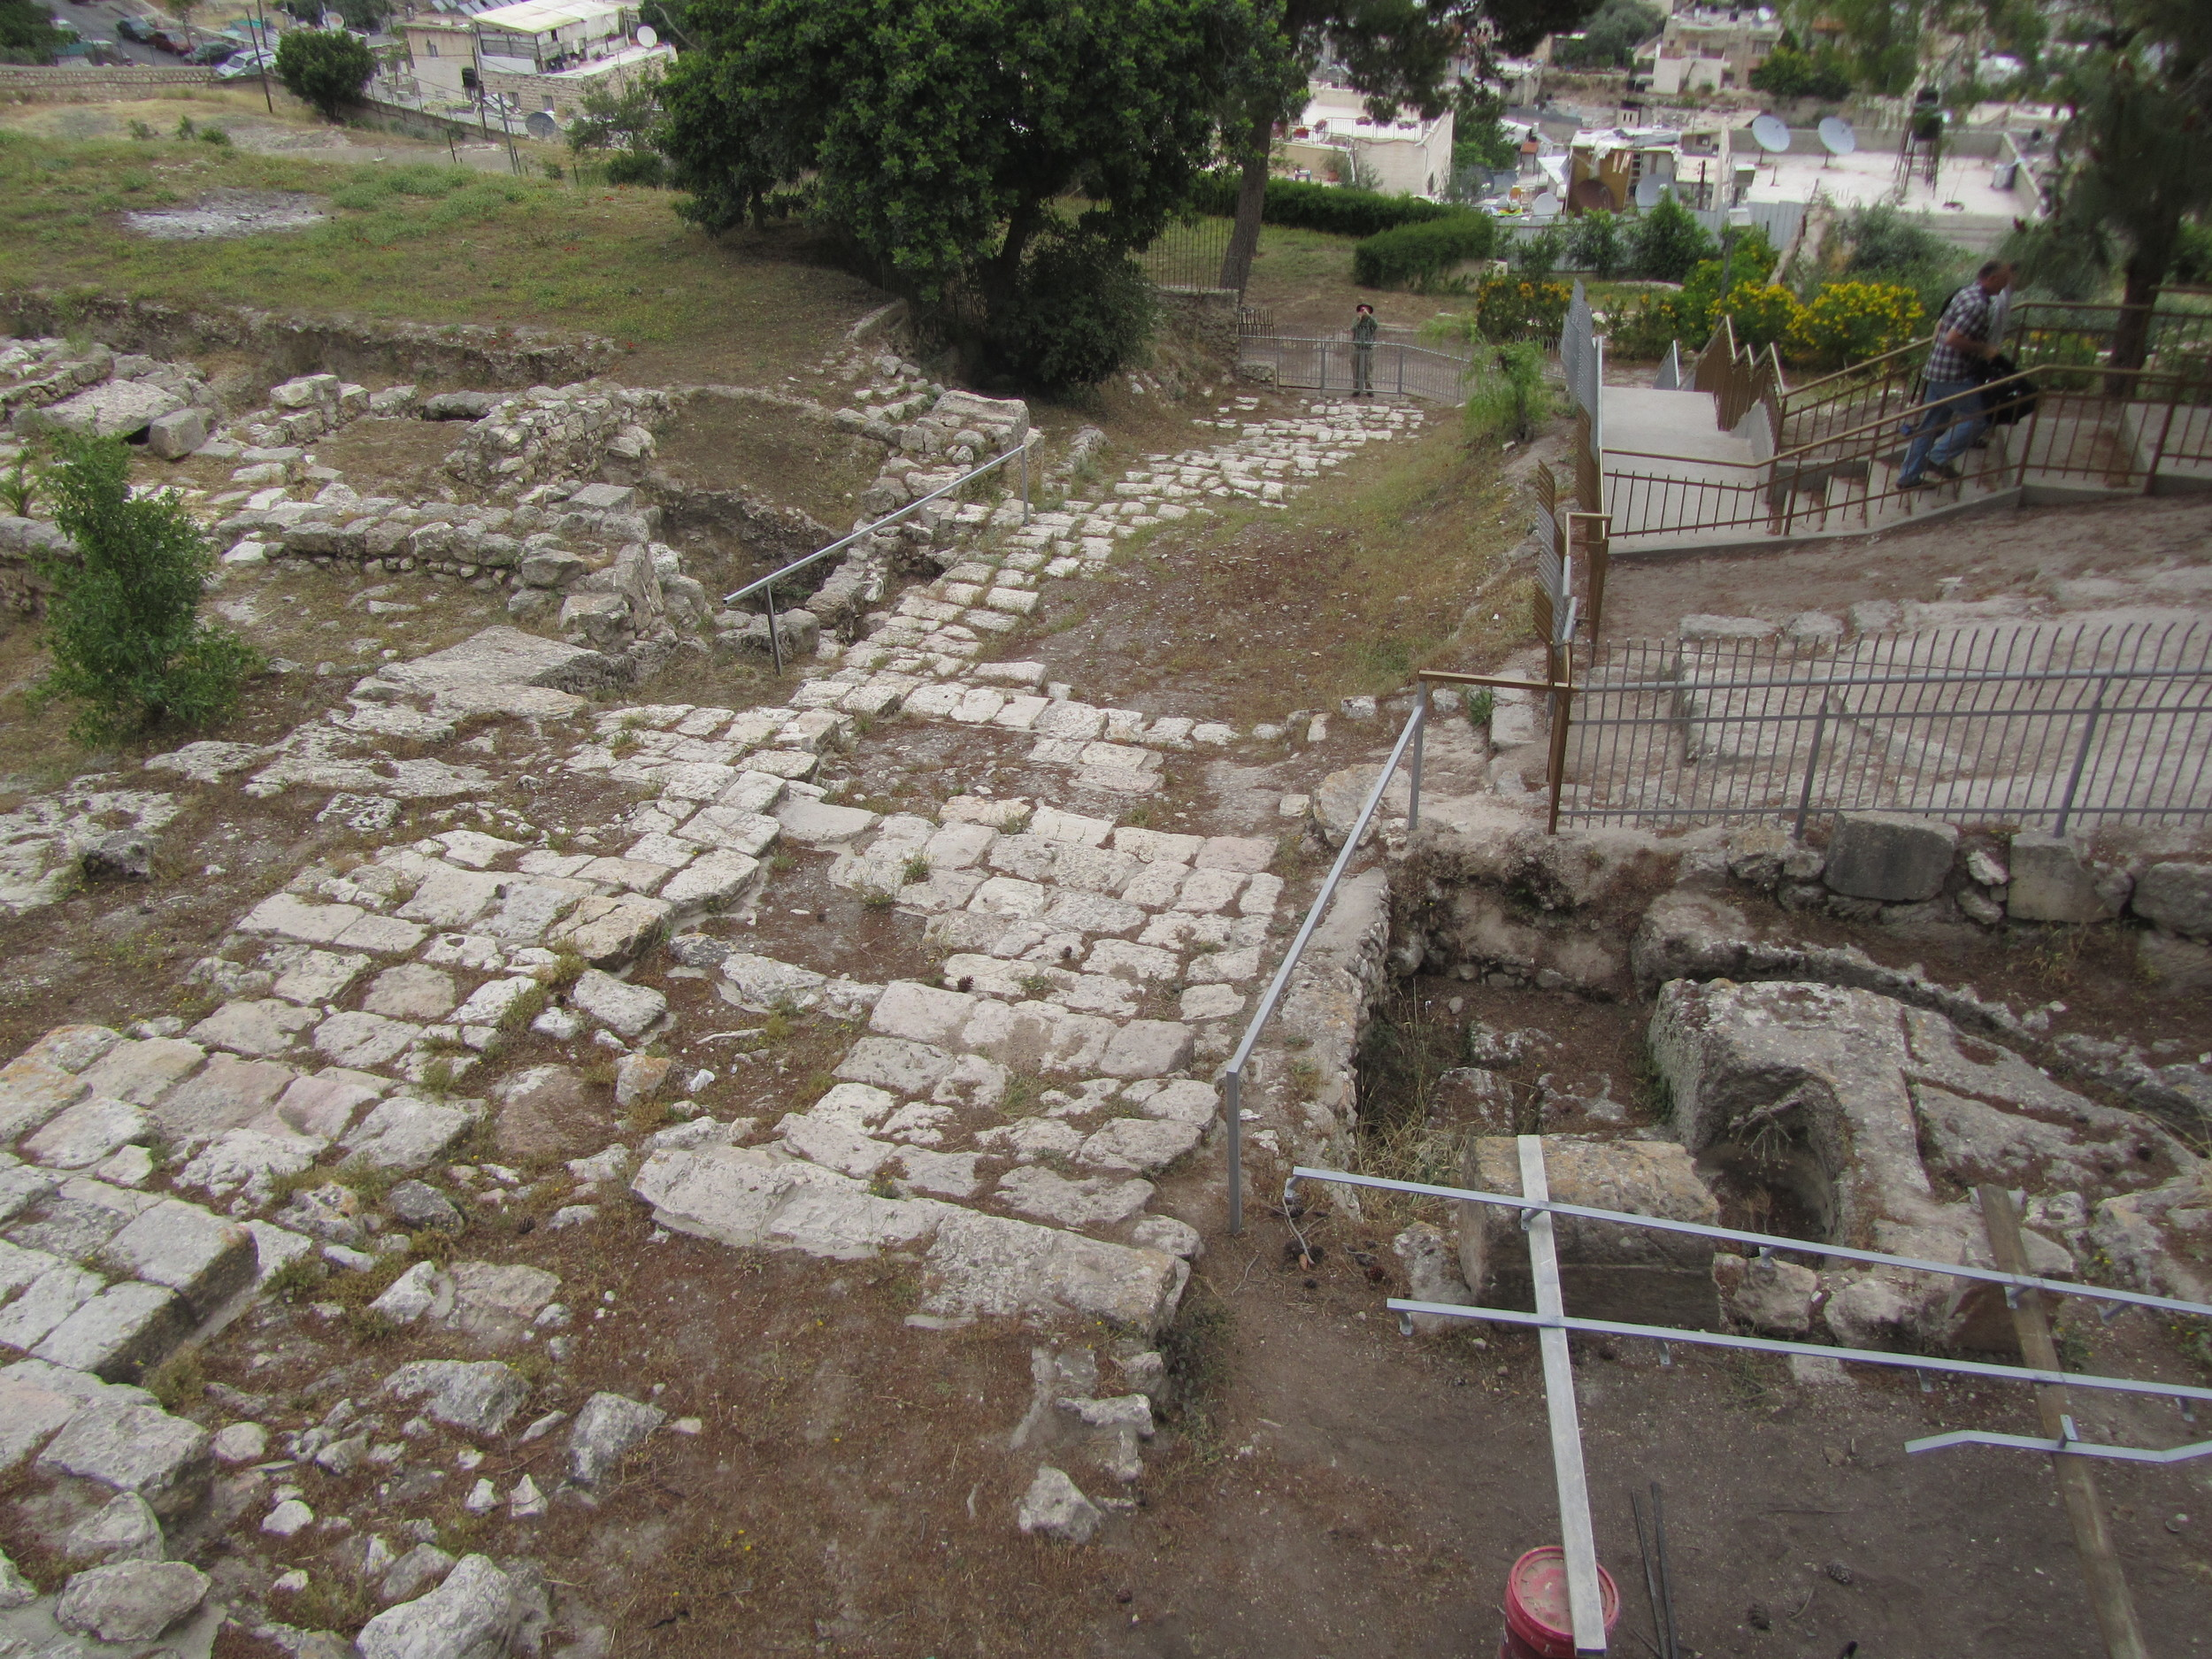 A stepped street from the time of Jesus